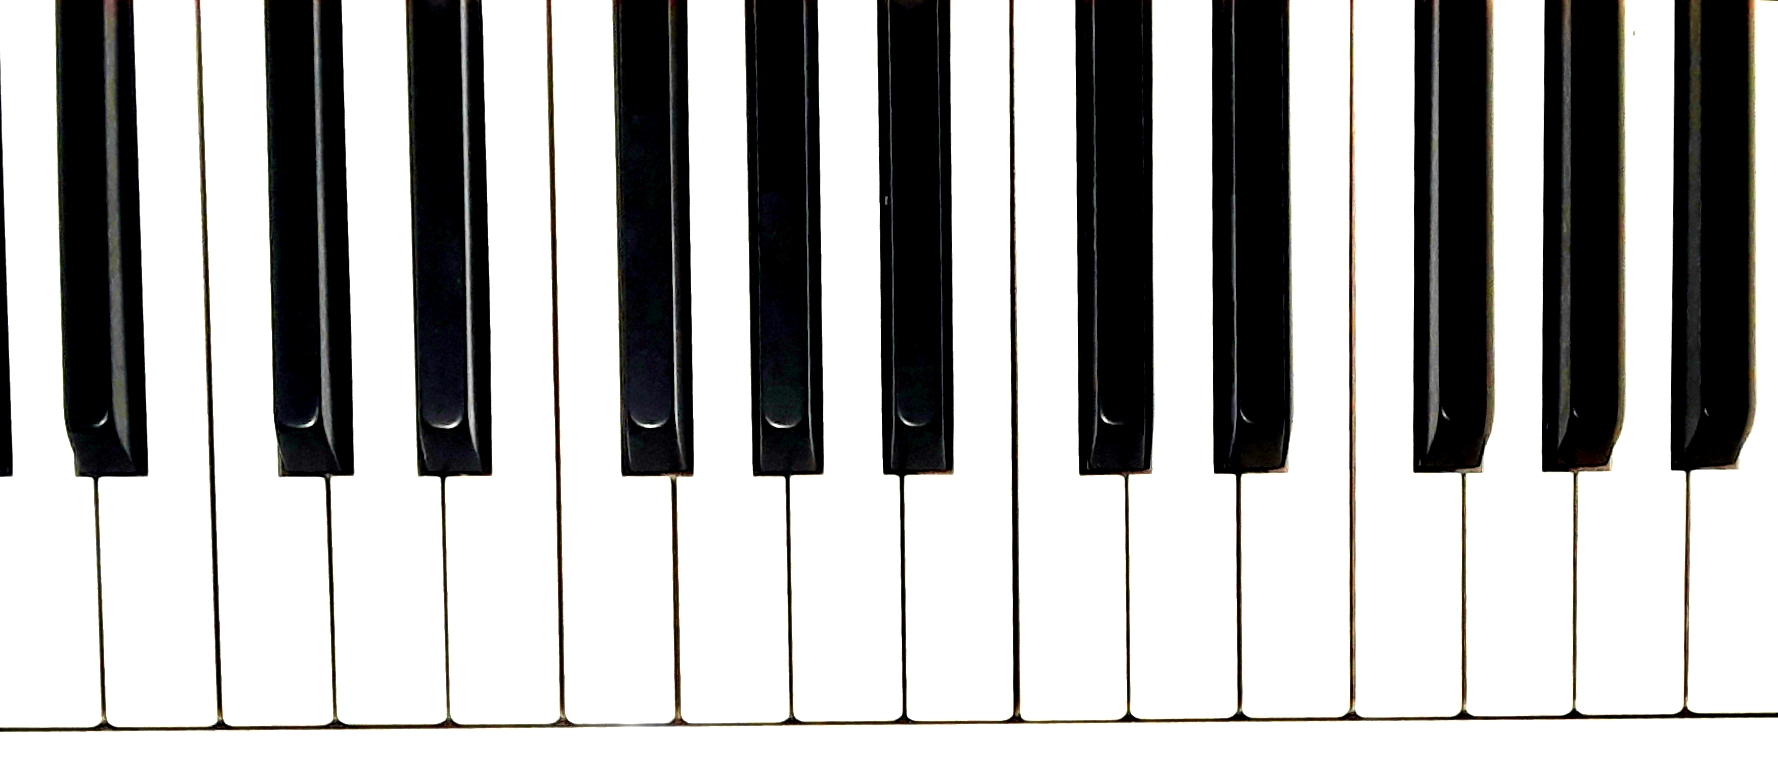 Schedule a consultation - Looking for piano lessons, coaching, or an accompanist? Seulgee wants to hear from you!Please click to ask her questions or to request a consultation.